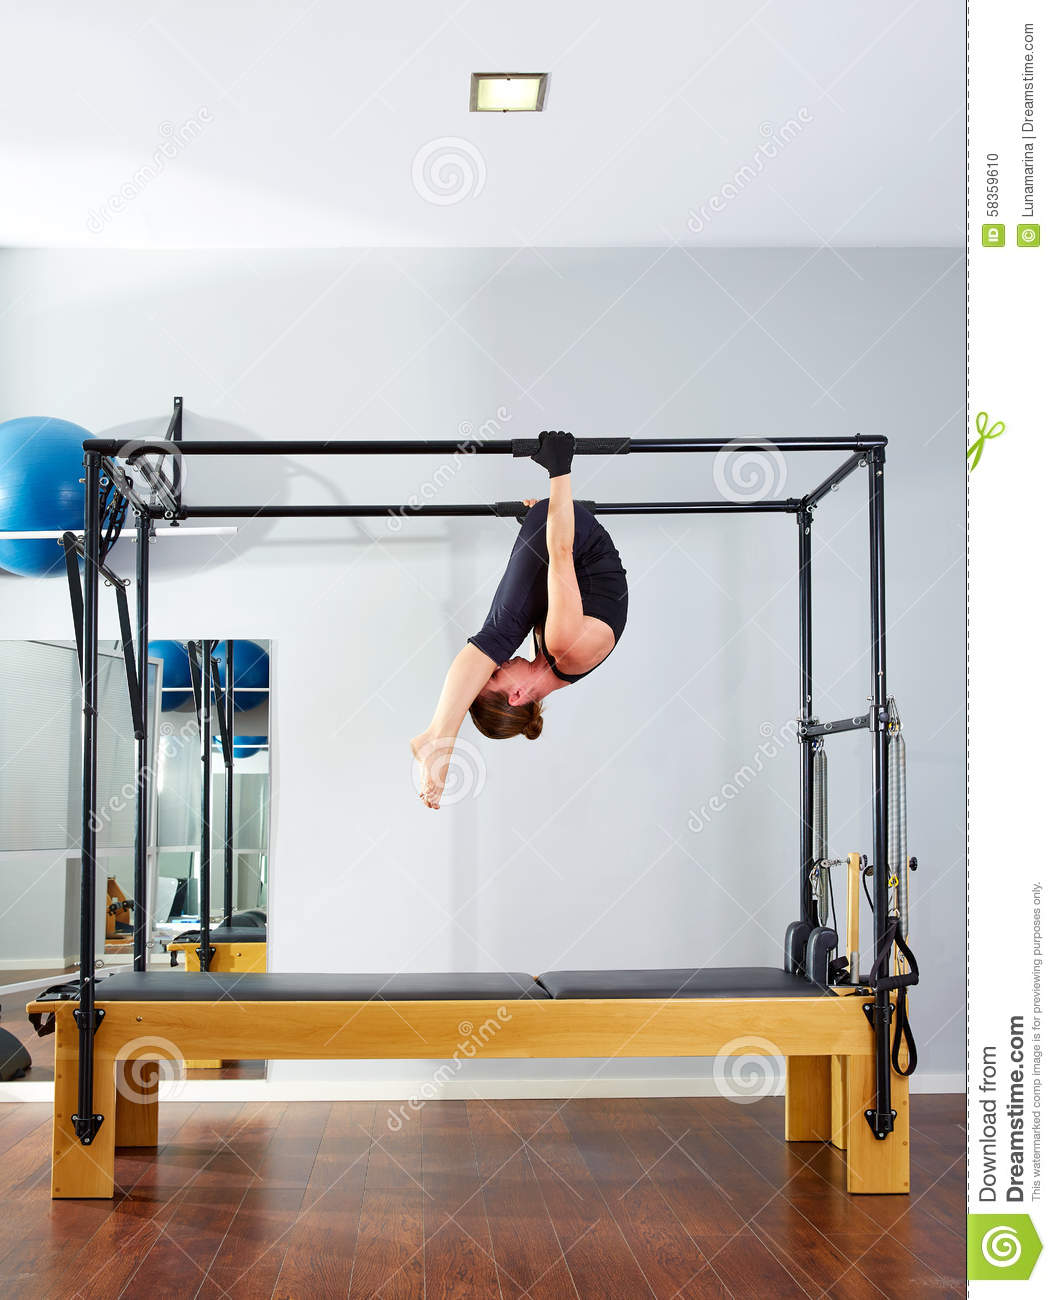 Cadillac Pilates: Pilates Woman In Cadillac Acrobatic Upside Down Stock Photo